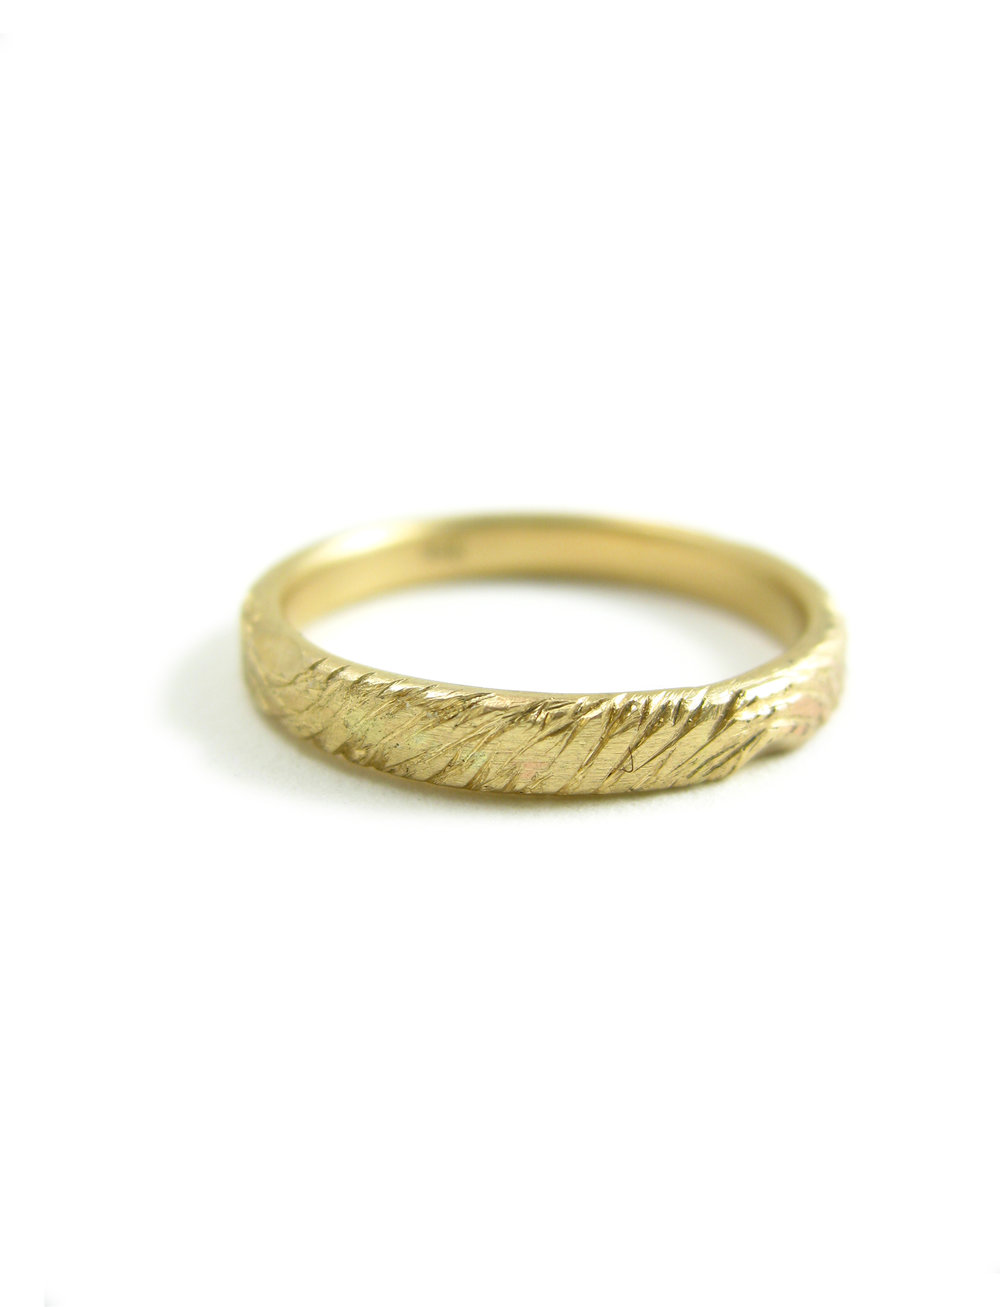 WOODLAND WEDDING BAND RECYCLED 14K GOLD ECO FRIENDLY Sharon Z